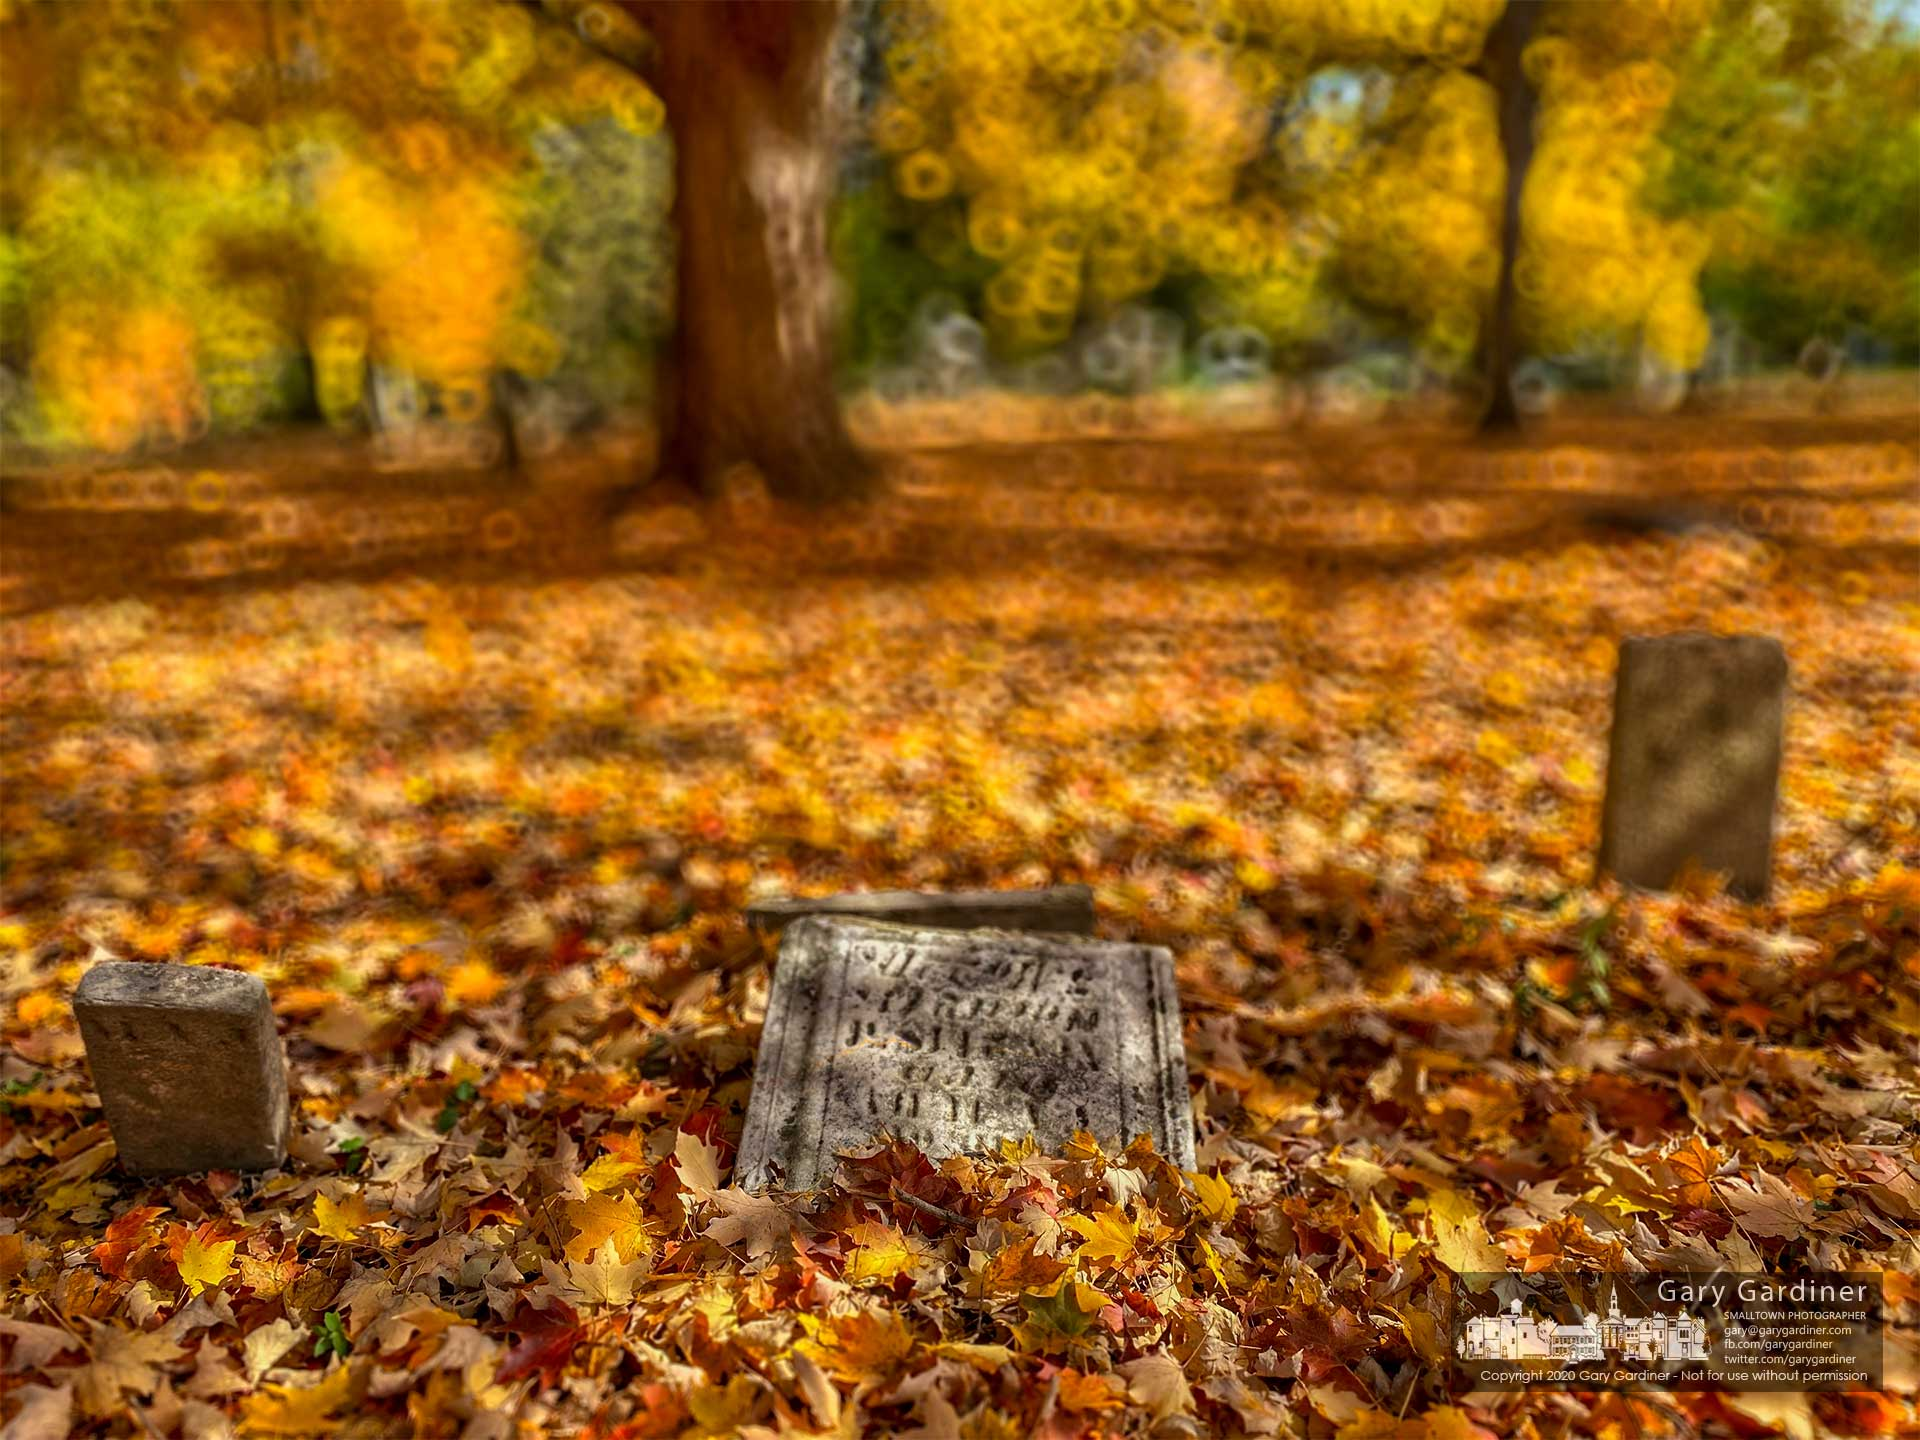 Headstones at the Olde Methodist Cemetery lie under a carpet of golden maple leaves. My Final Photo for October 23, 2020.